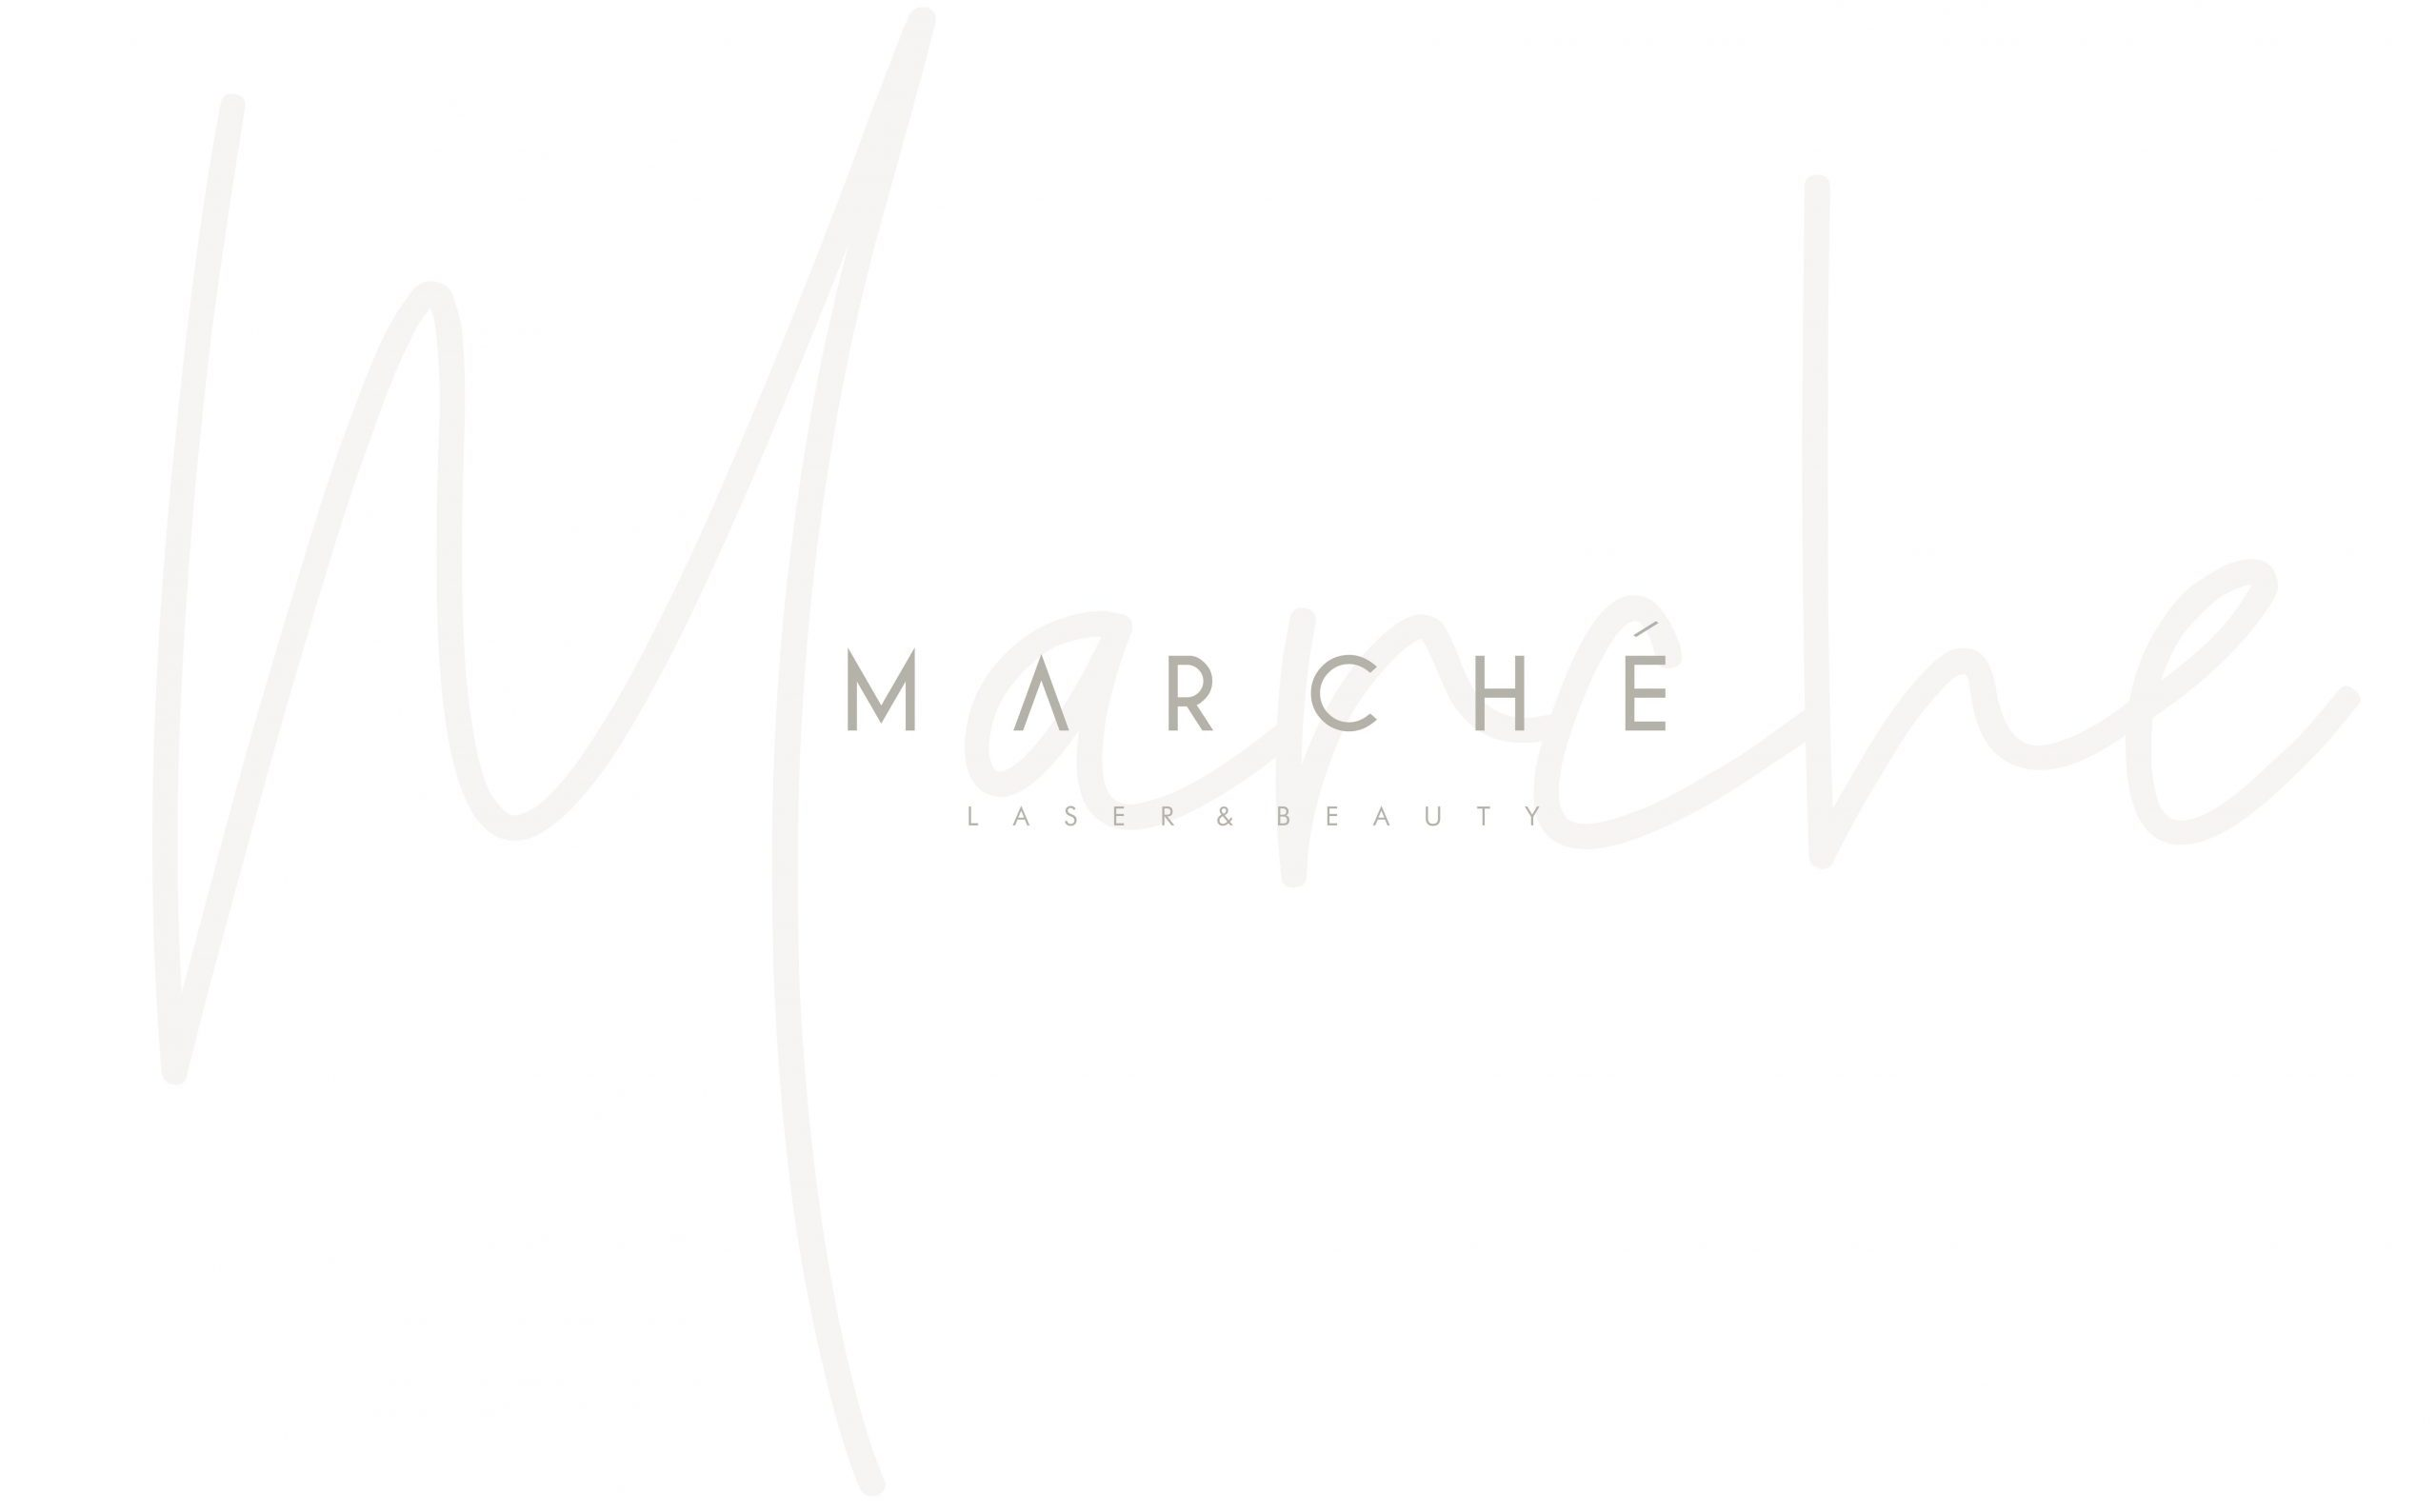 Marche laser and beauty nelspruit